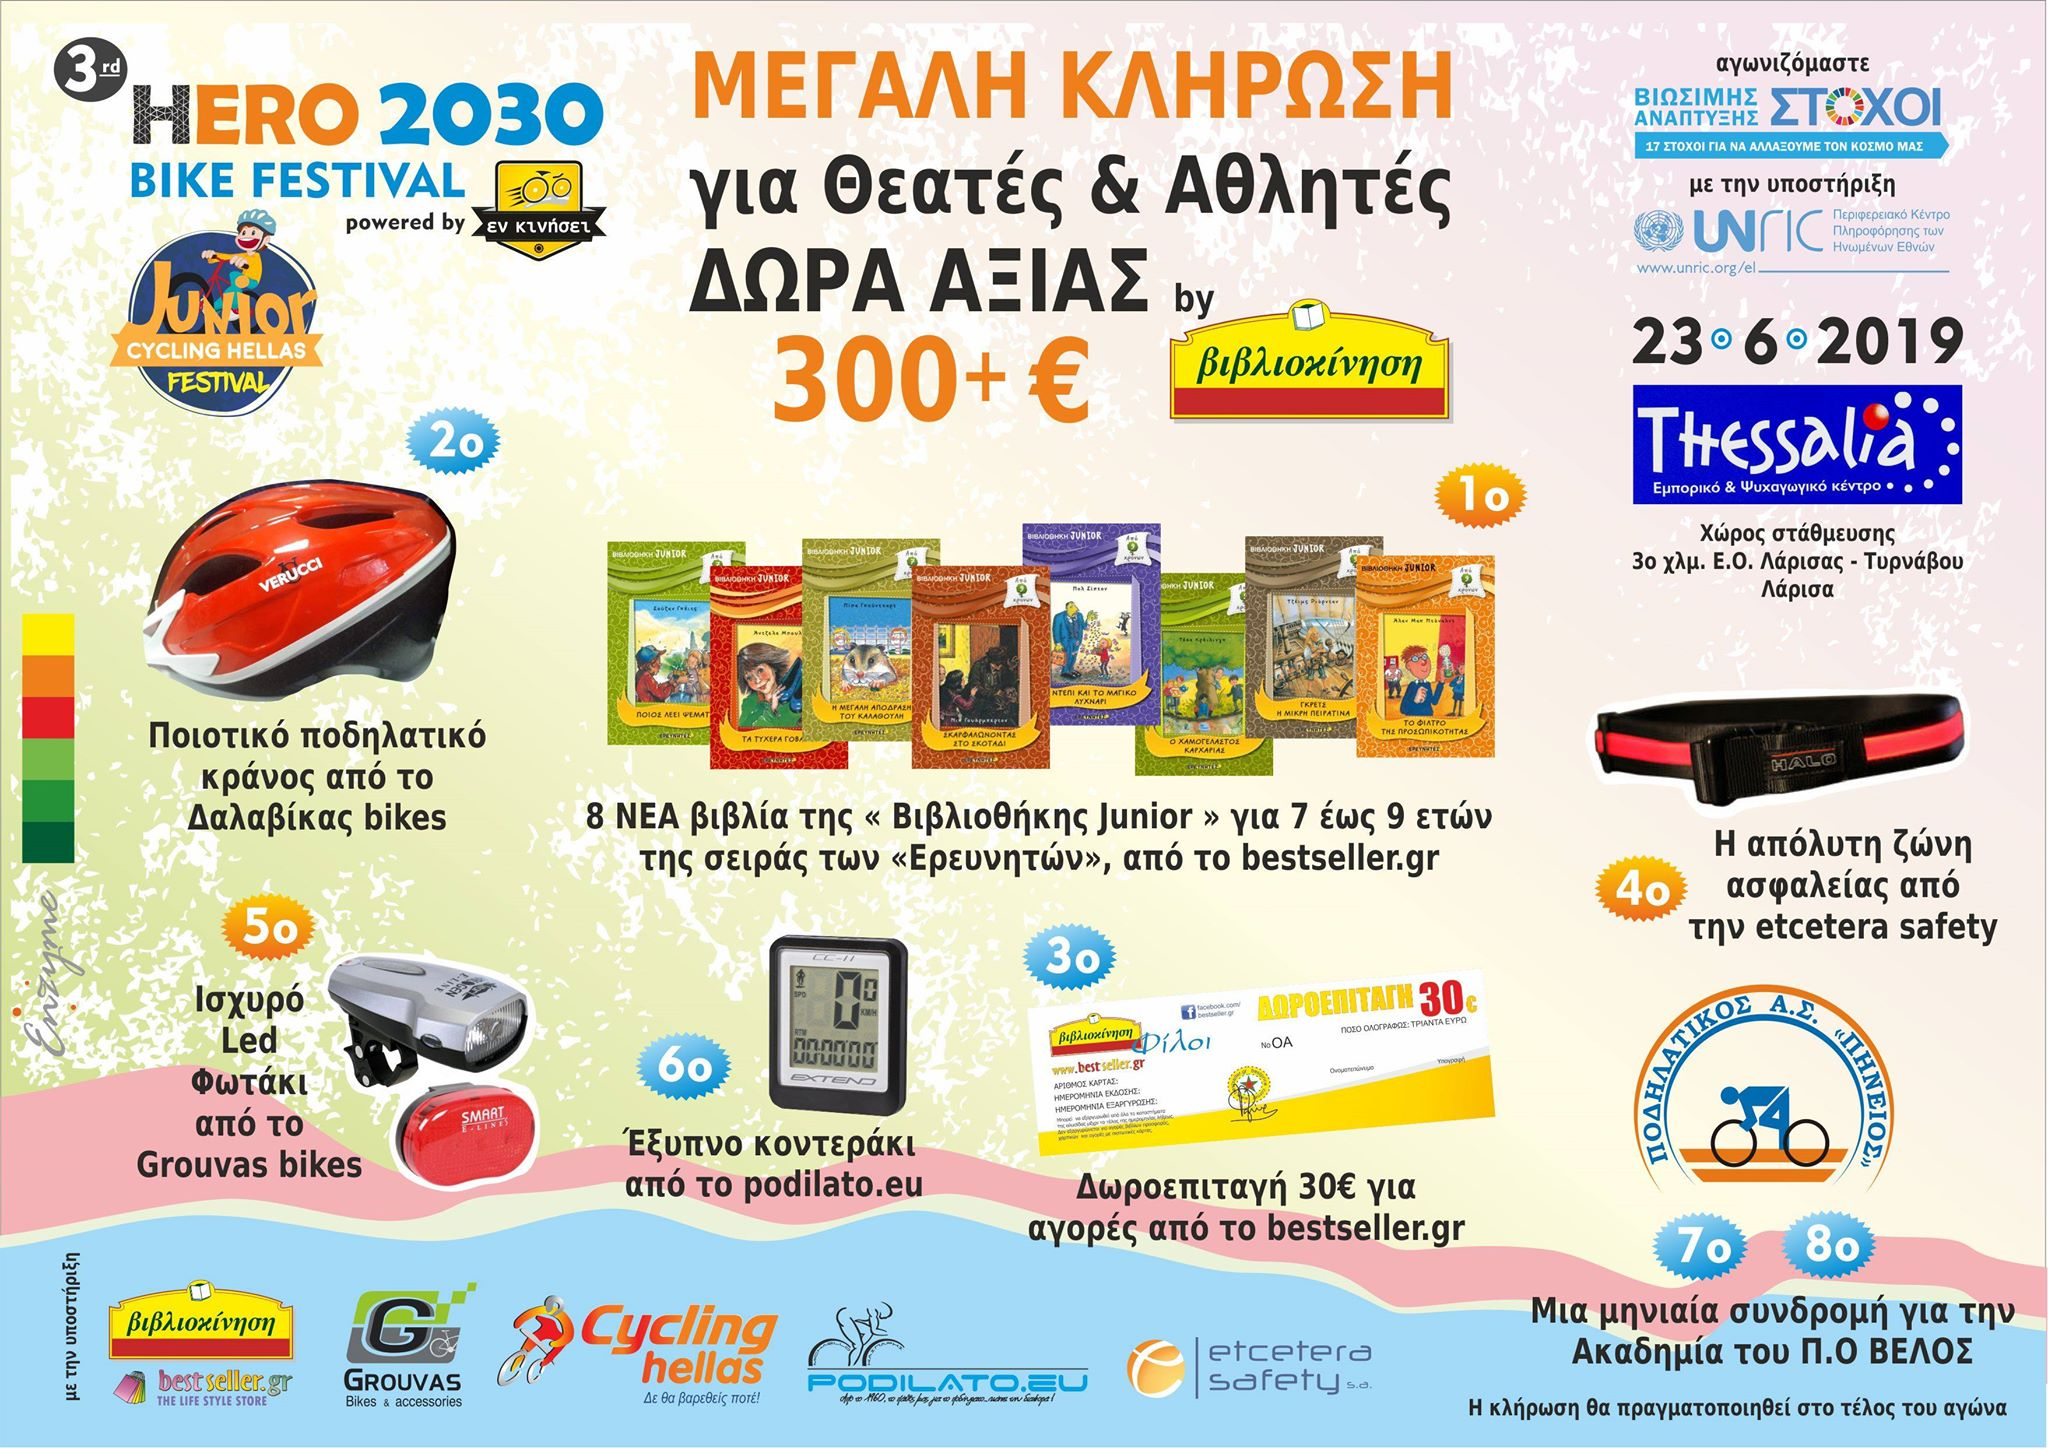 5.CYCLINGHELLAS JUNIOR RACE HERO 2030 ΚΛΗΡΩΣΗ ΔΩΡΩΝ